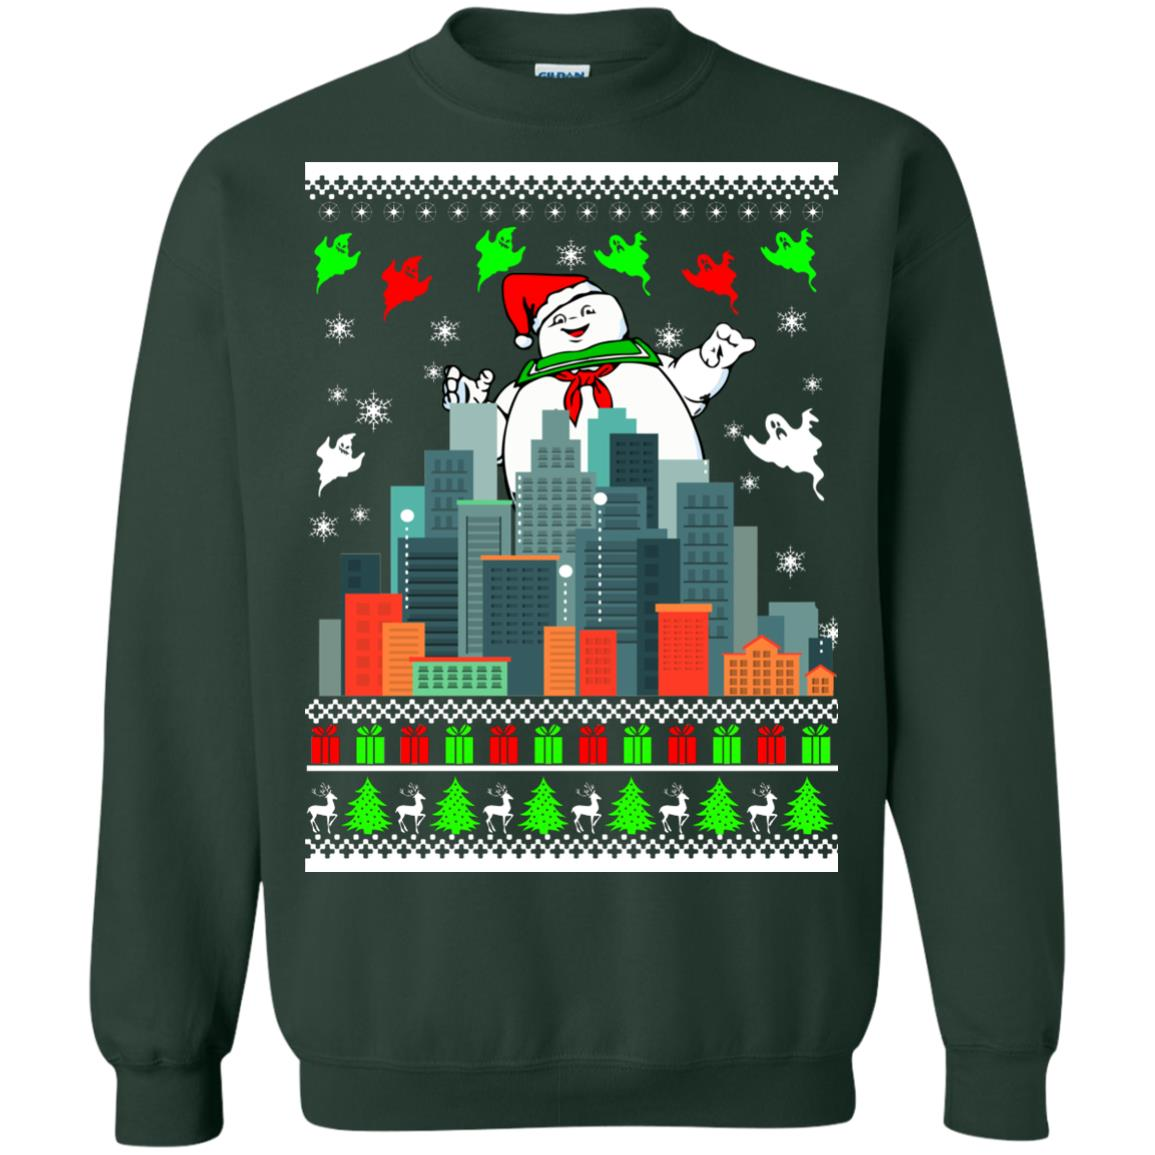 image 4475 - There is no Santa only Zuul Christmas Sweater, Shirt